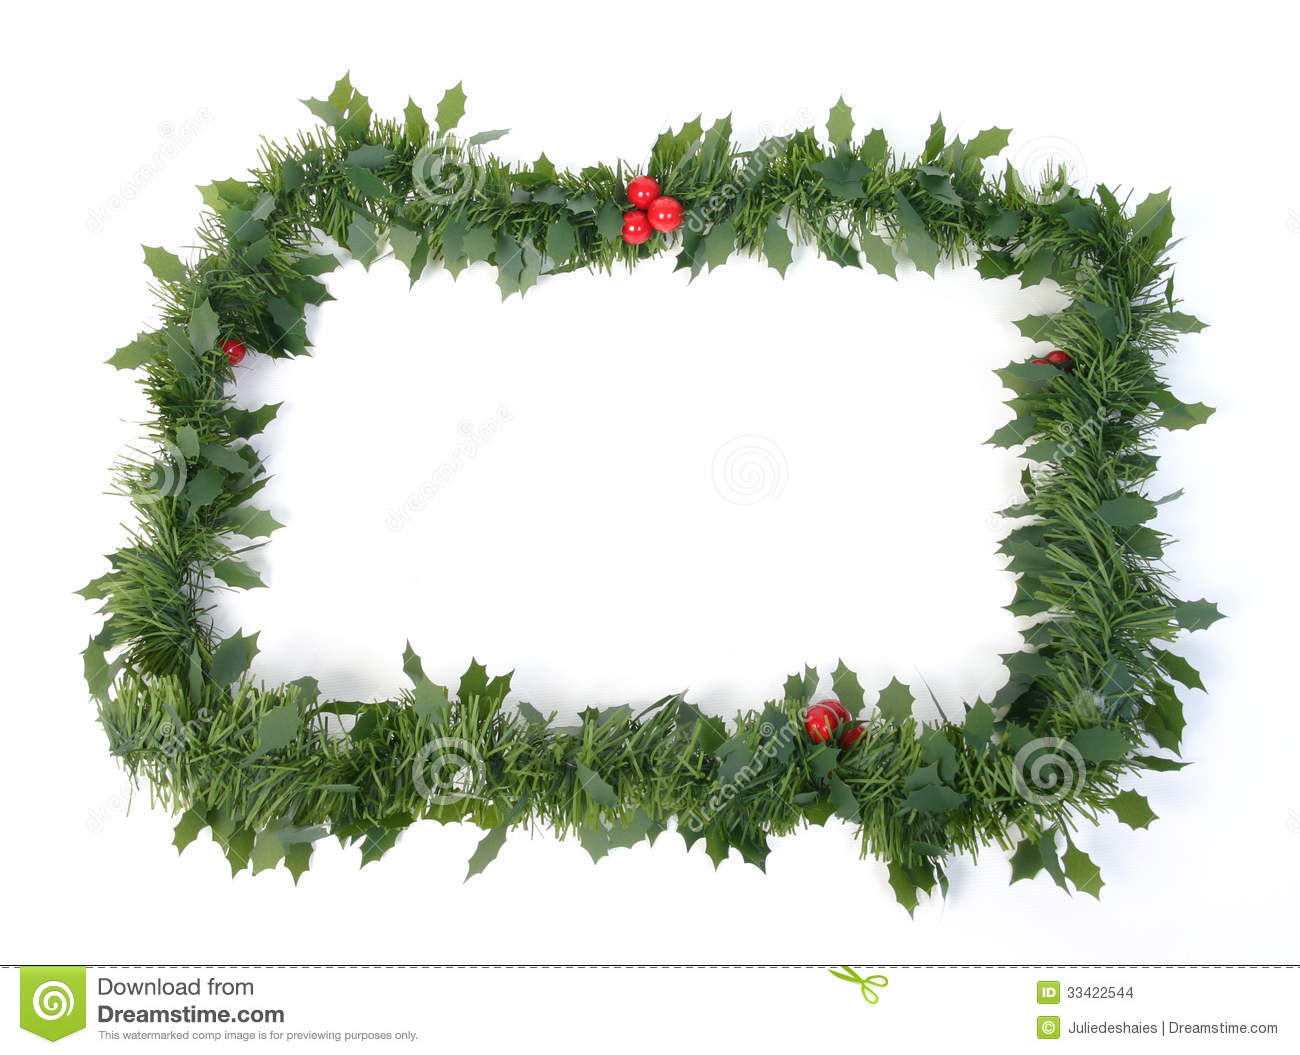 Christmas garlands decorations - Christmas Garland Stock Images